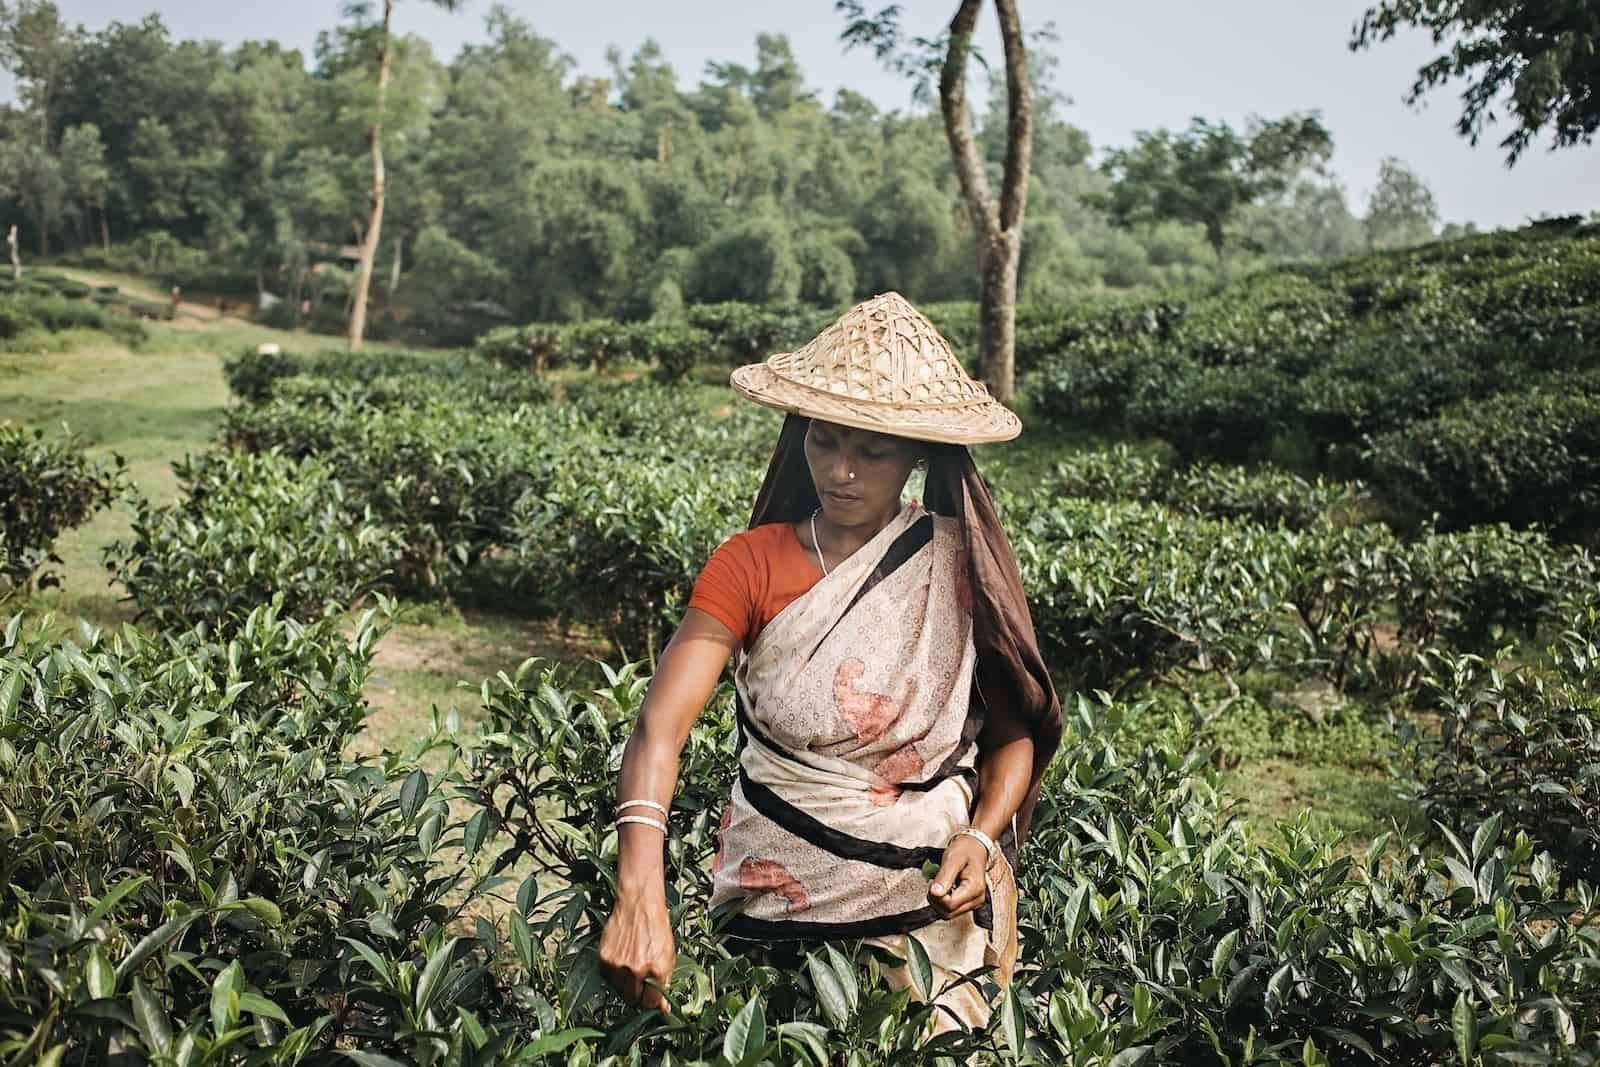 A woman wearing a straw hat, red shirt and tan colored sari stands in a large green field full of bushes, picking leaves to make the most popular drink in the world.